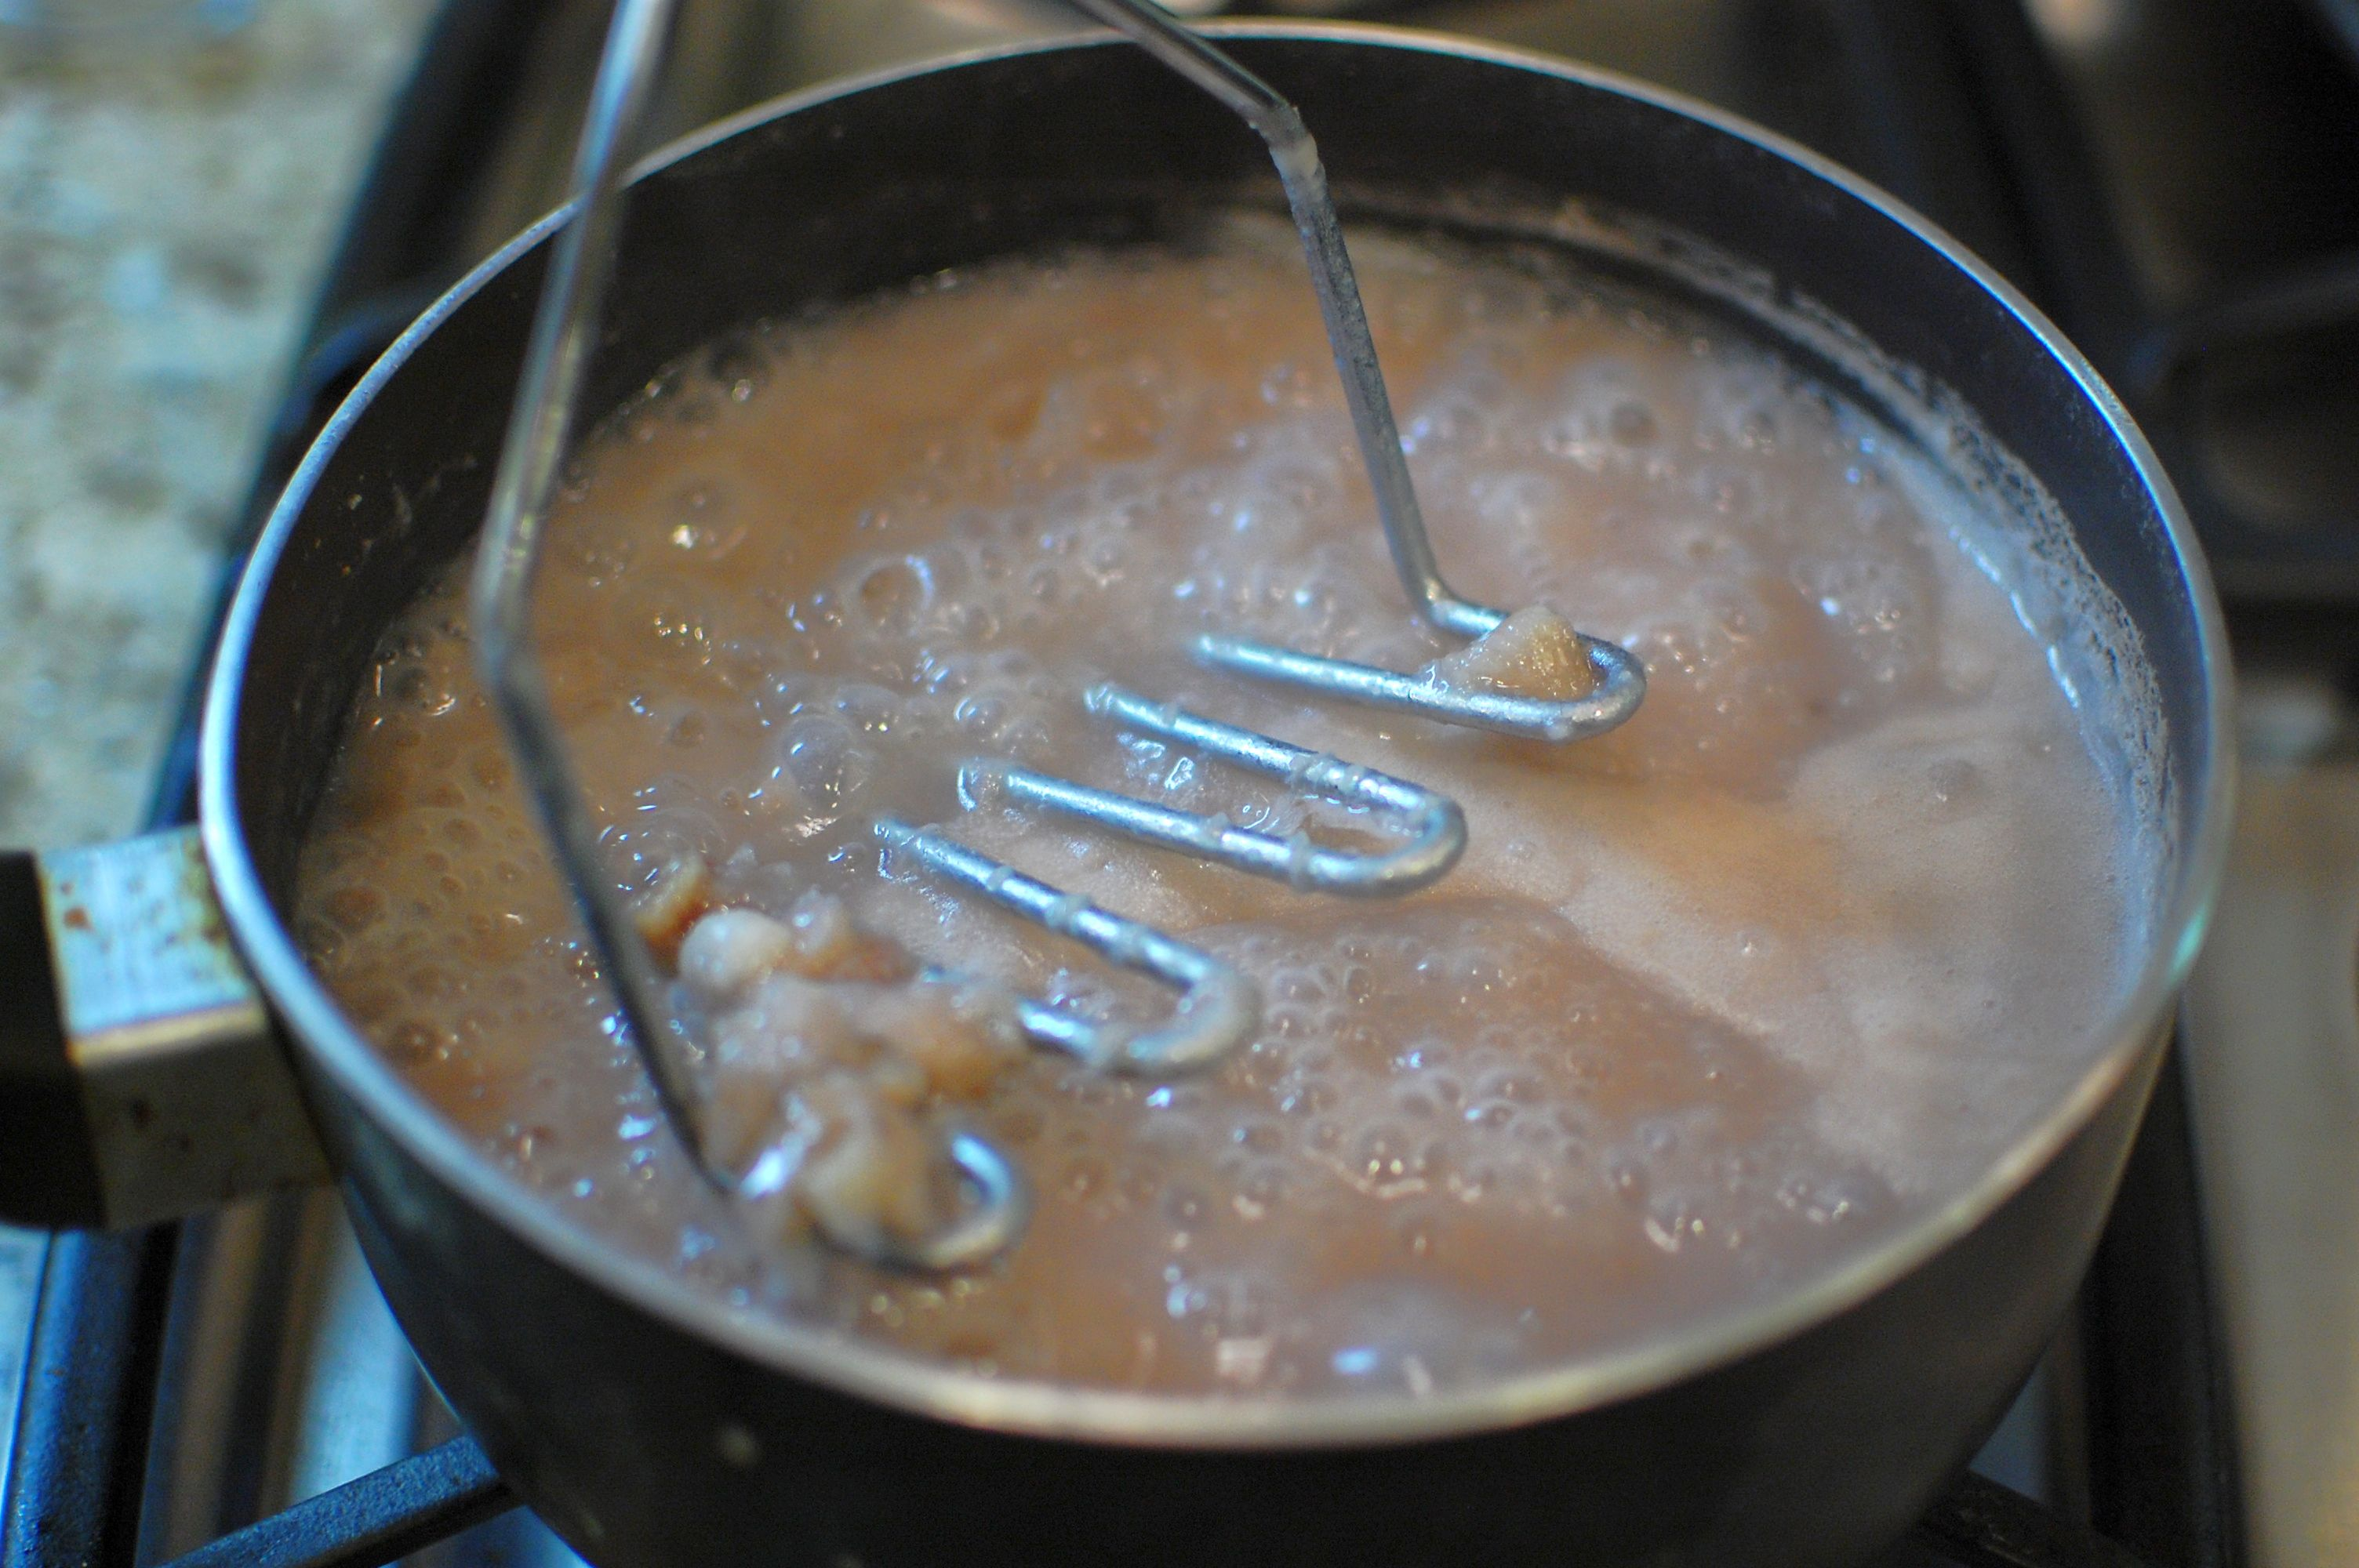 the tapioca, and stir. Simmer for another 15 minutes until the tapioca ...